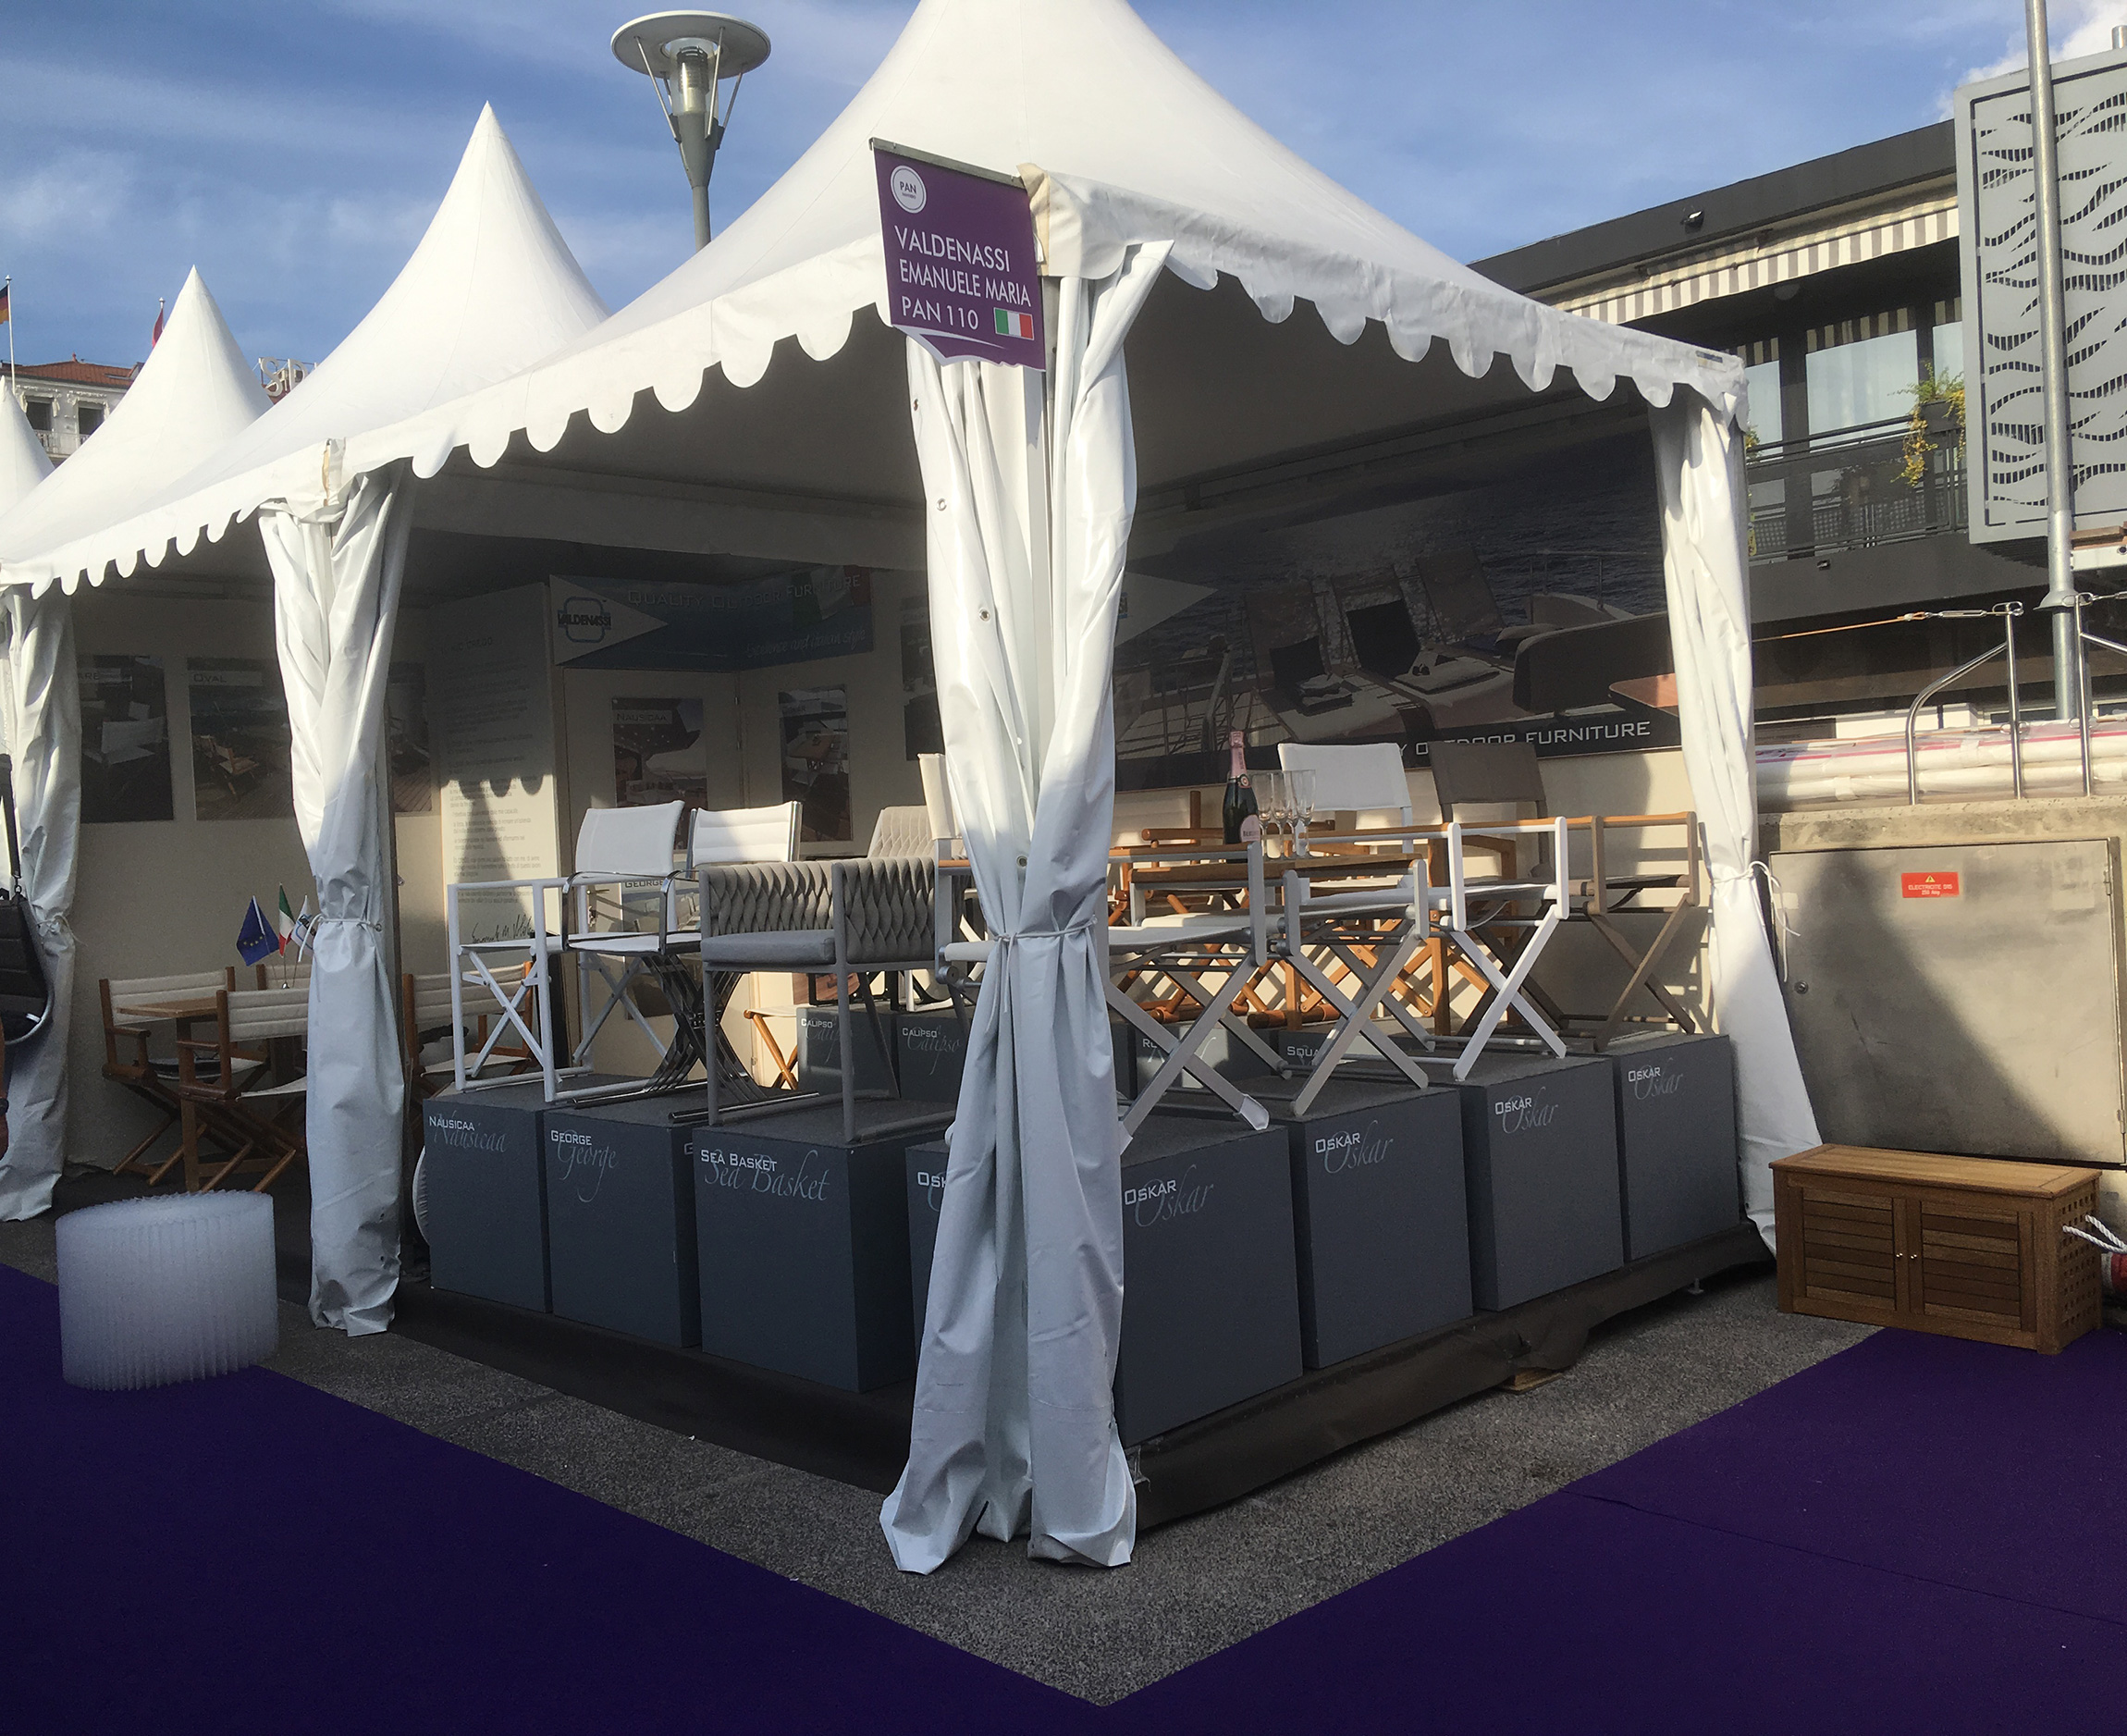 2018 Yachting Festival Cannes